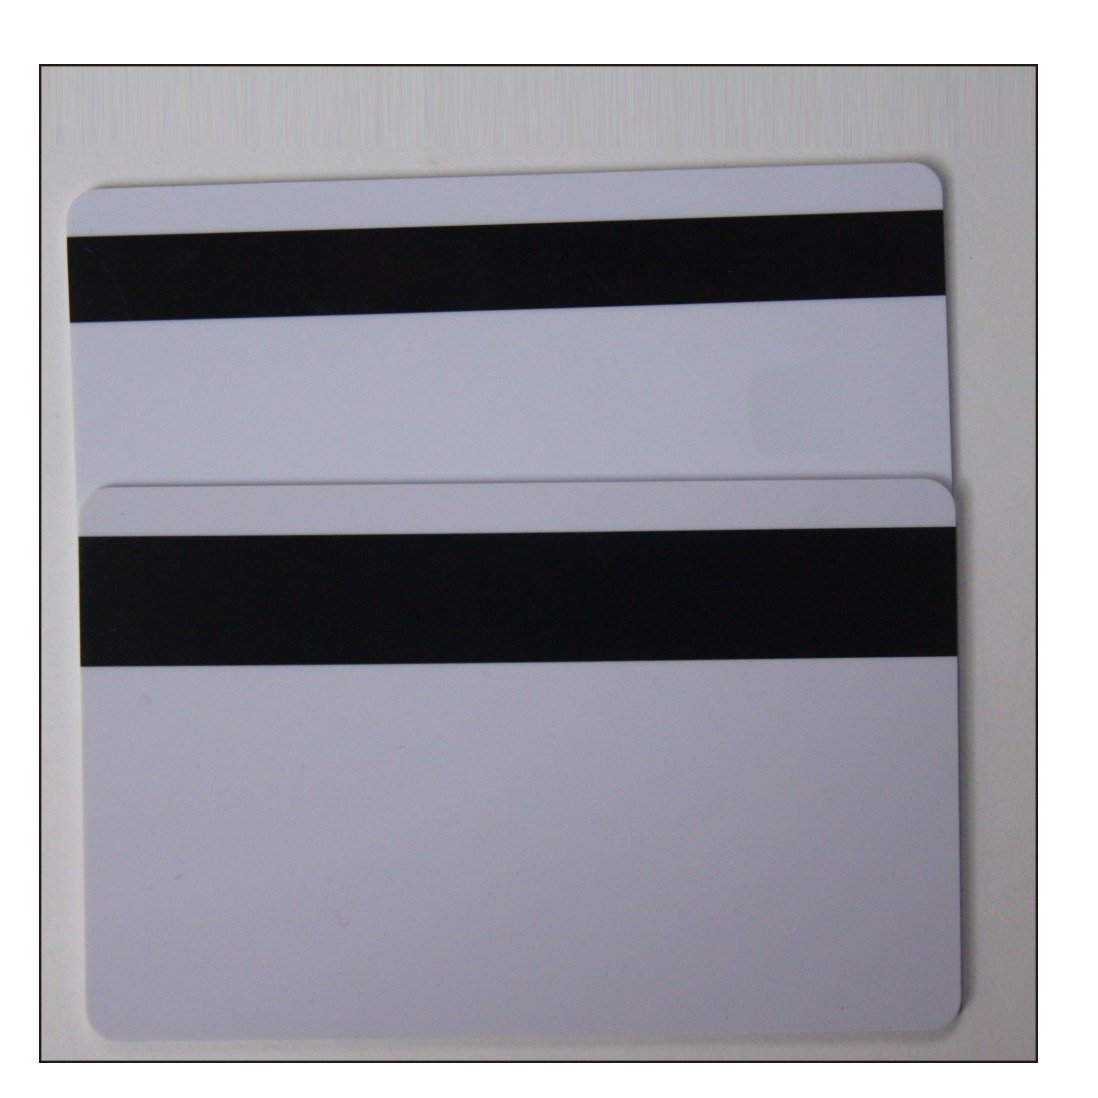 Magnetic card cheapest cost colorful for programmed ticket